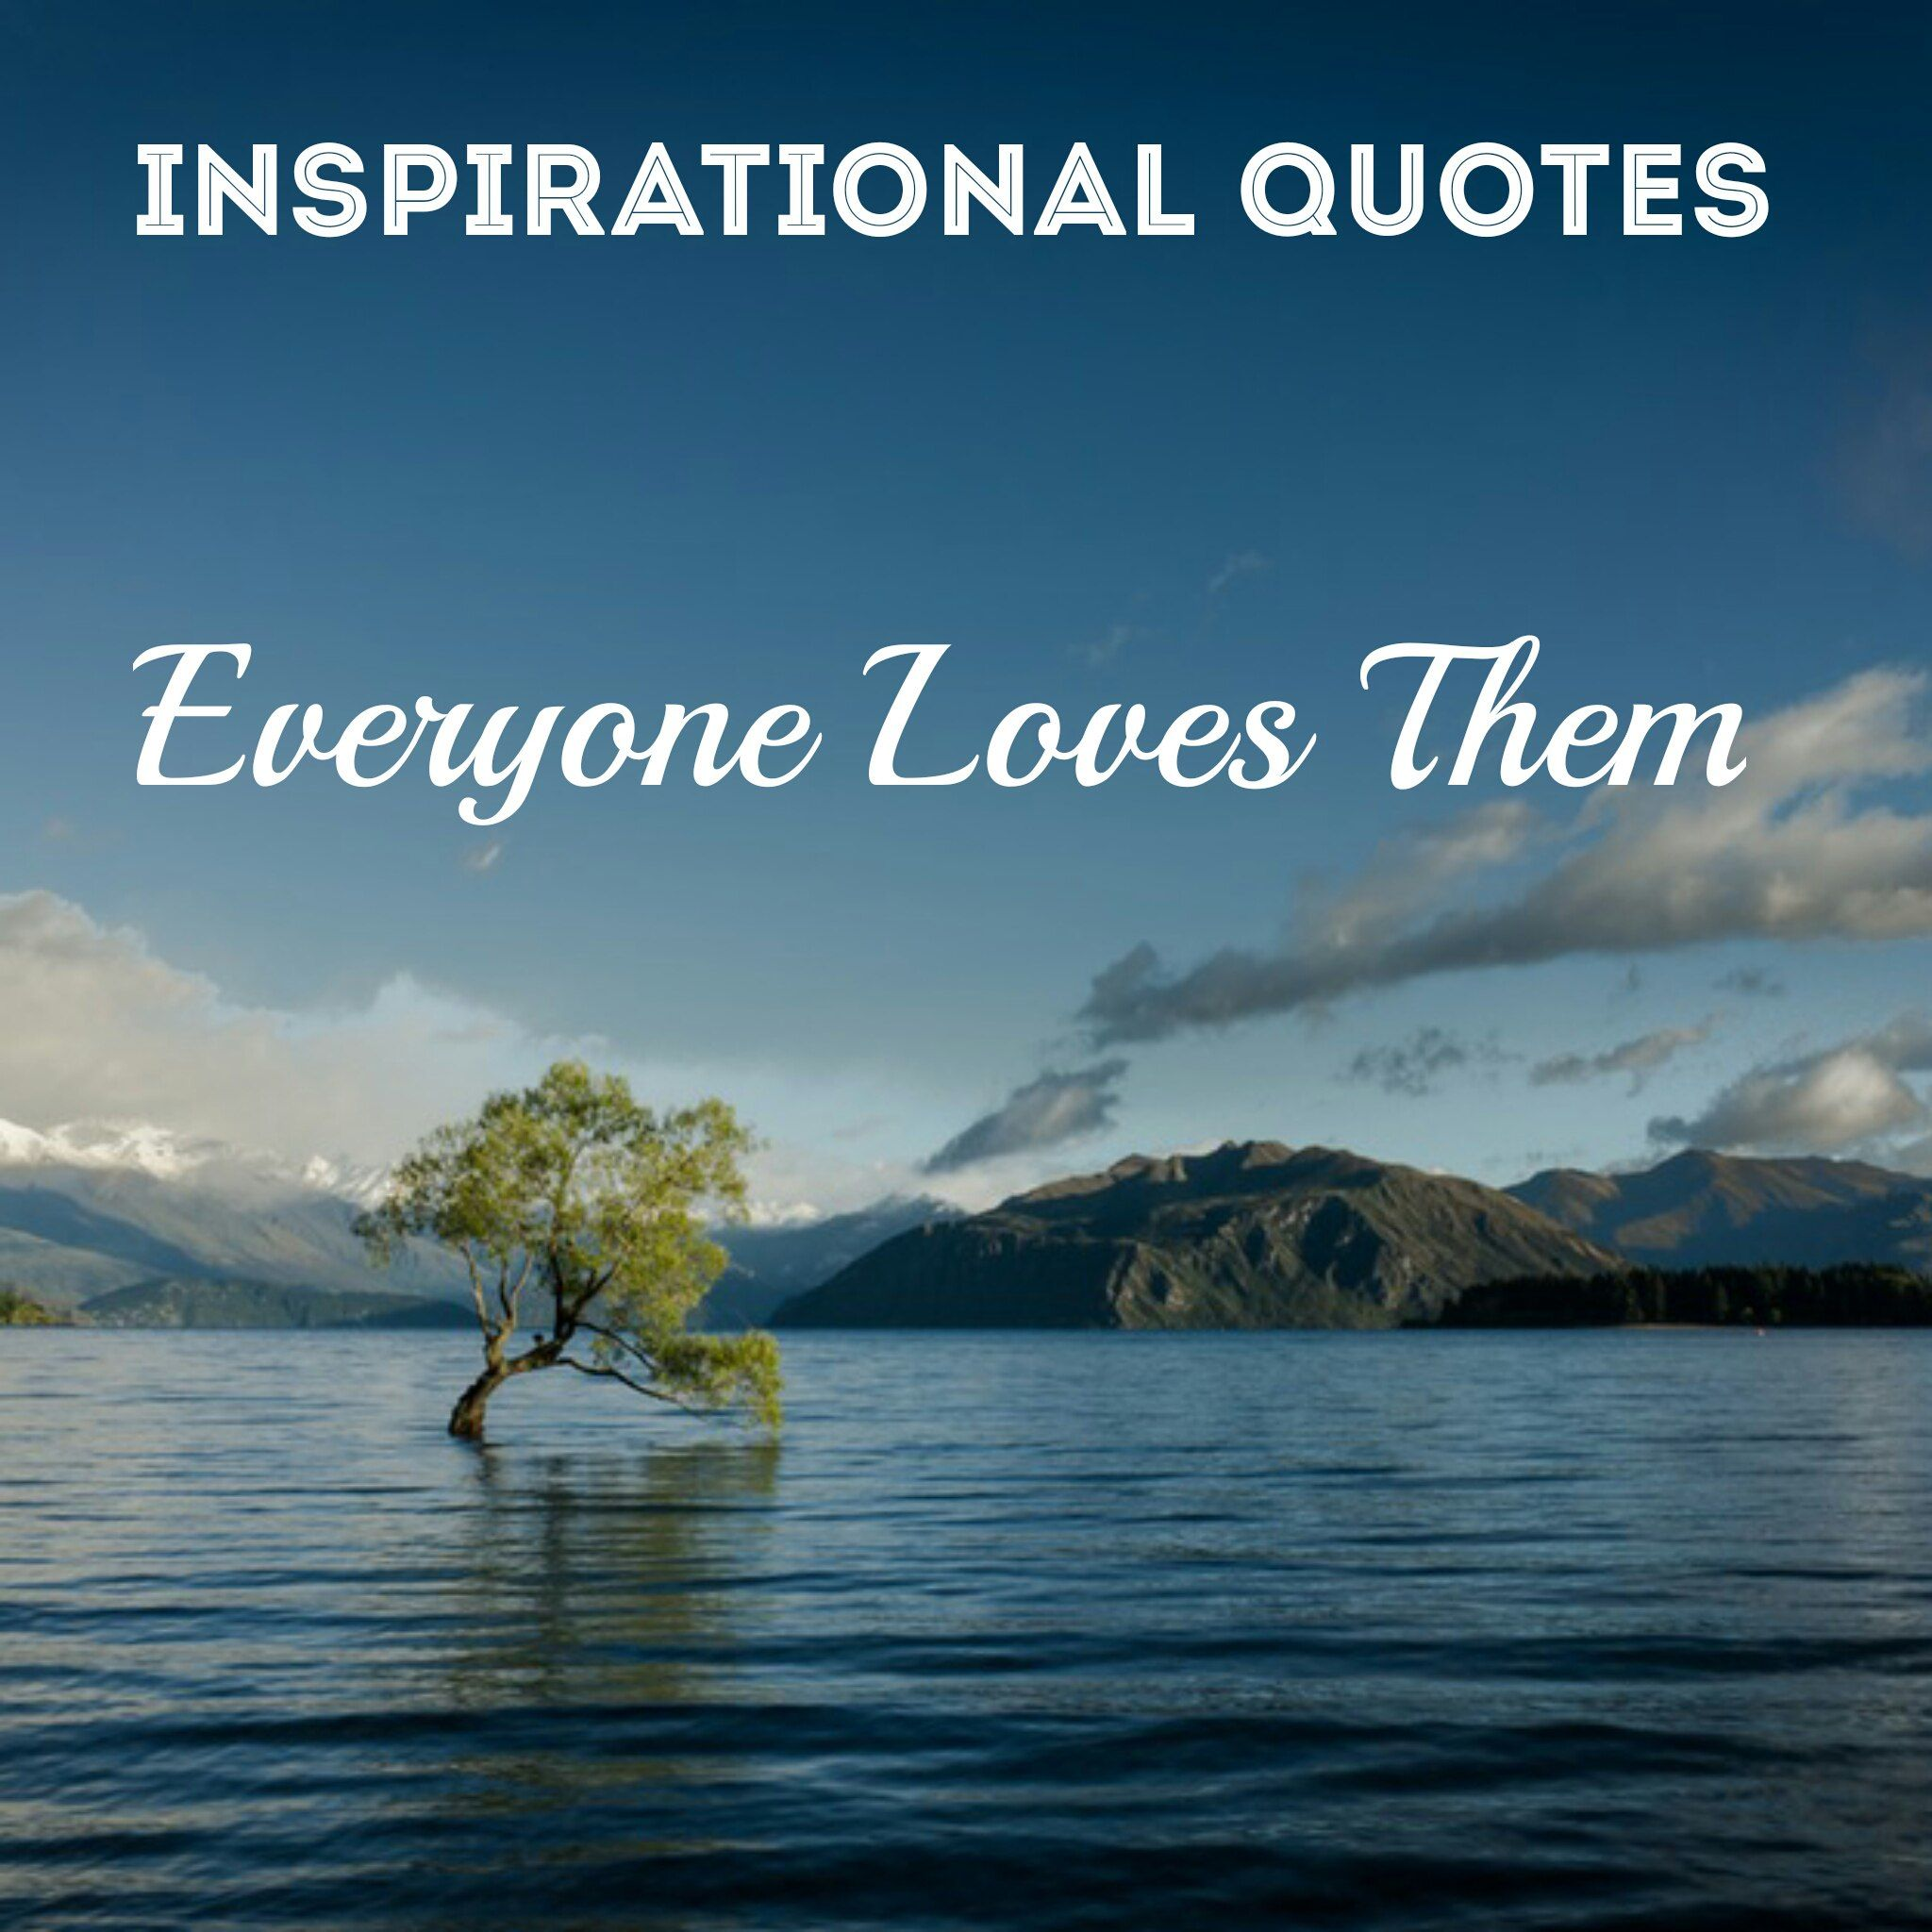 Inspirational Proverbs 154 Best Inspirational Quotes & Sayings Of All Time